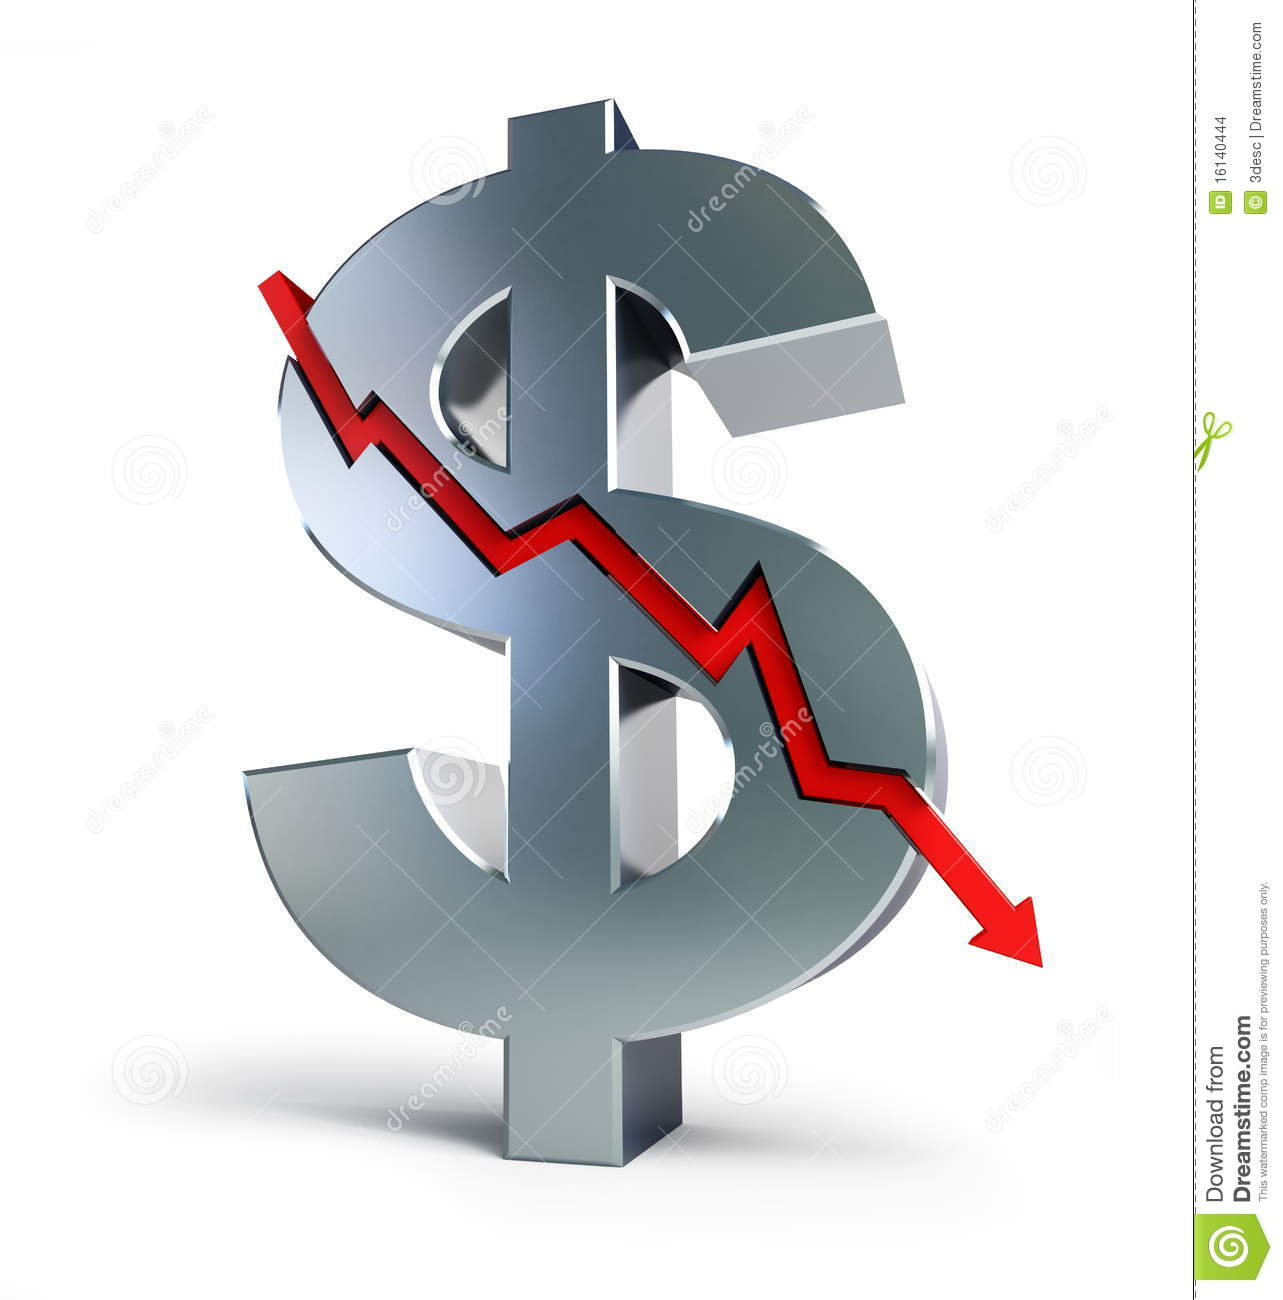 Finance Sign: Dollar Sign Is Cracked Financial Crisis Stock Illustration